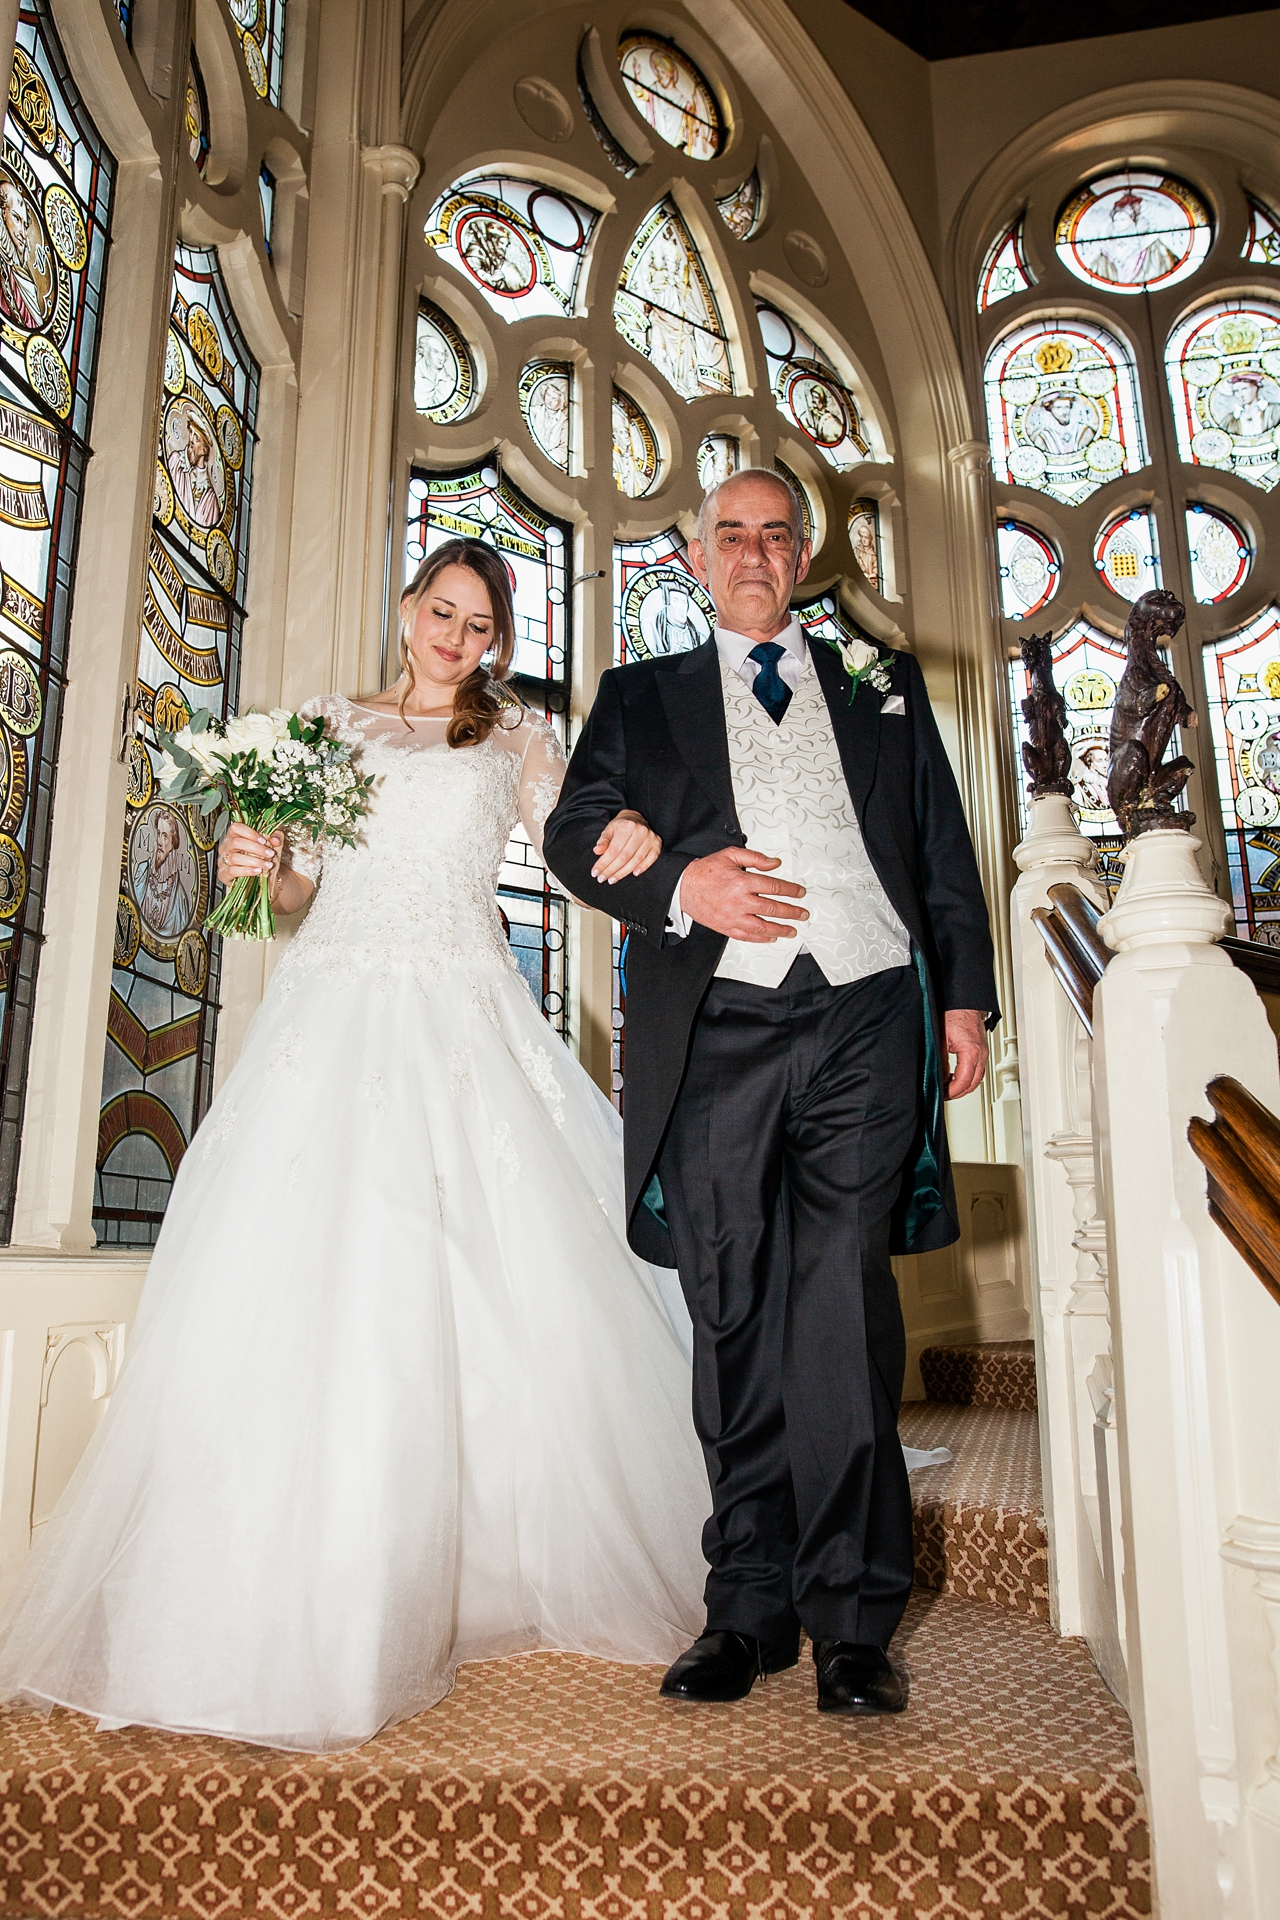 Proud father about to give his daughter away on her wedding day